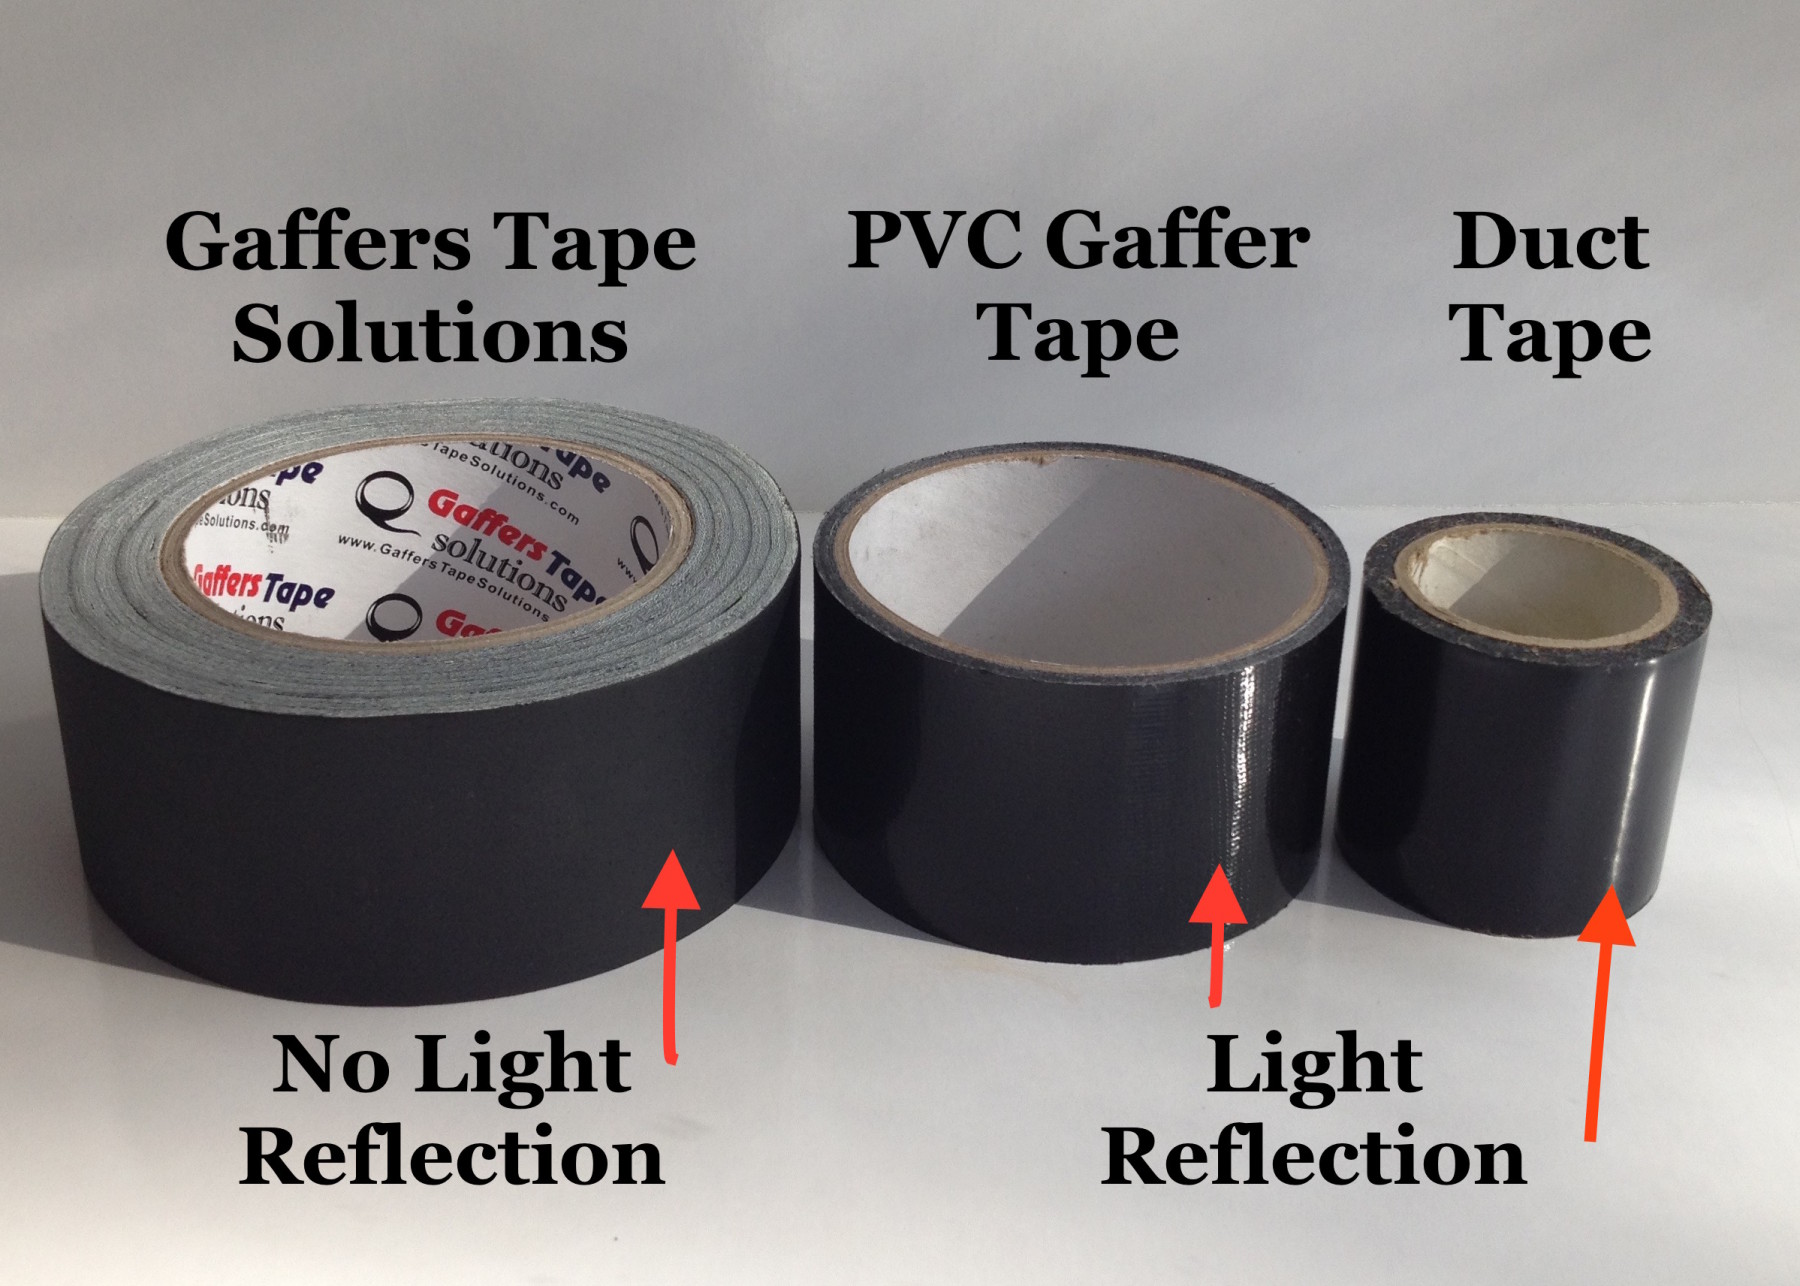 Best gaffer tape on amazon gaffers tape solutions from the professional to the home or office worker this adhesive tape is essential in any toolbox gafferstapesolutionamazonbuynowbutton aloadofball Gallery